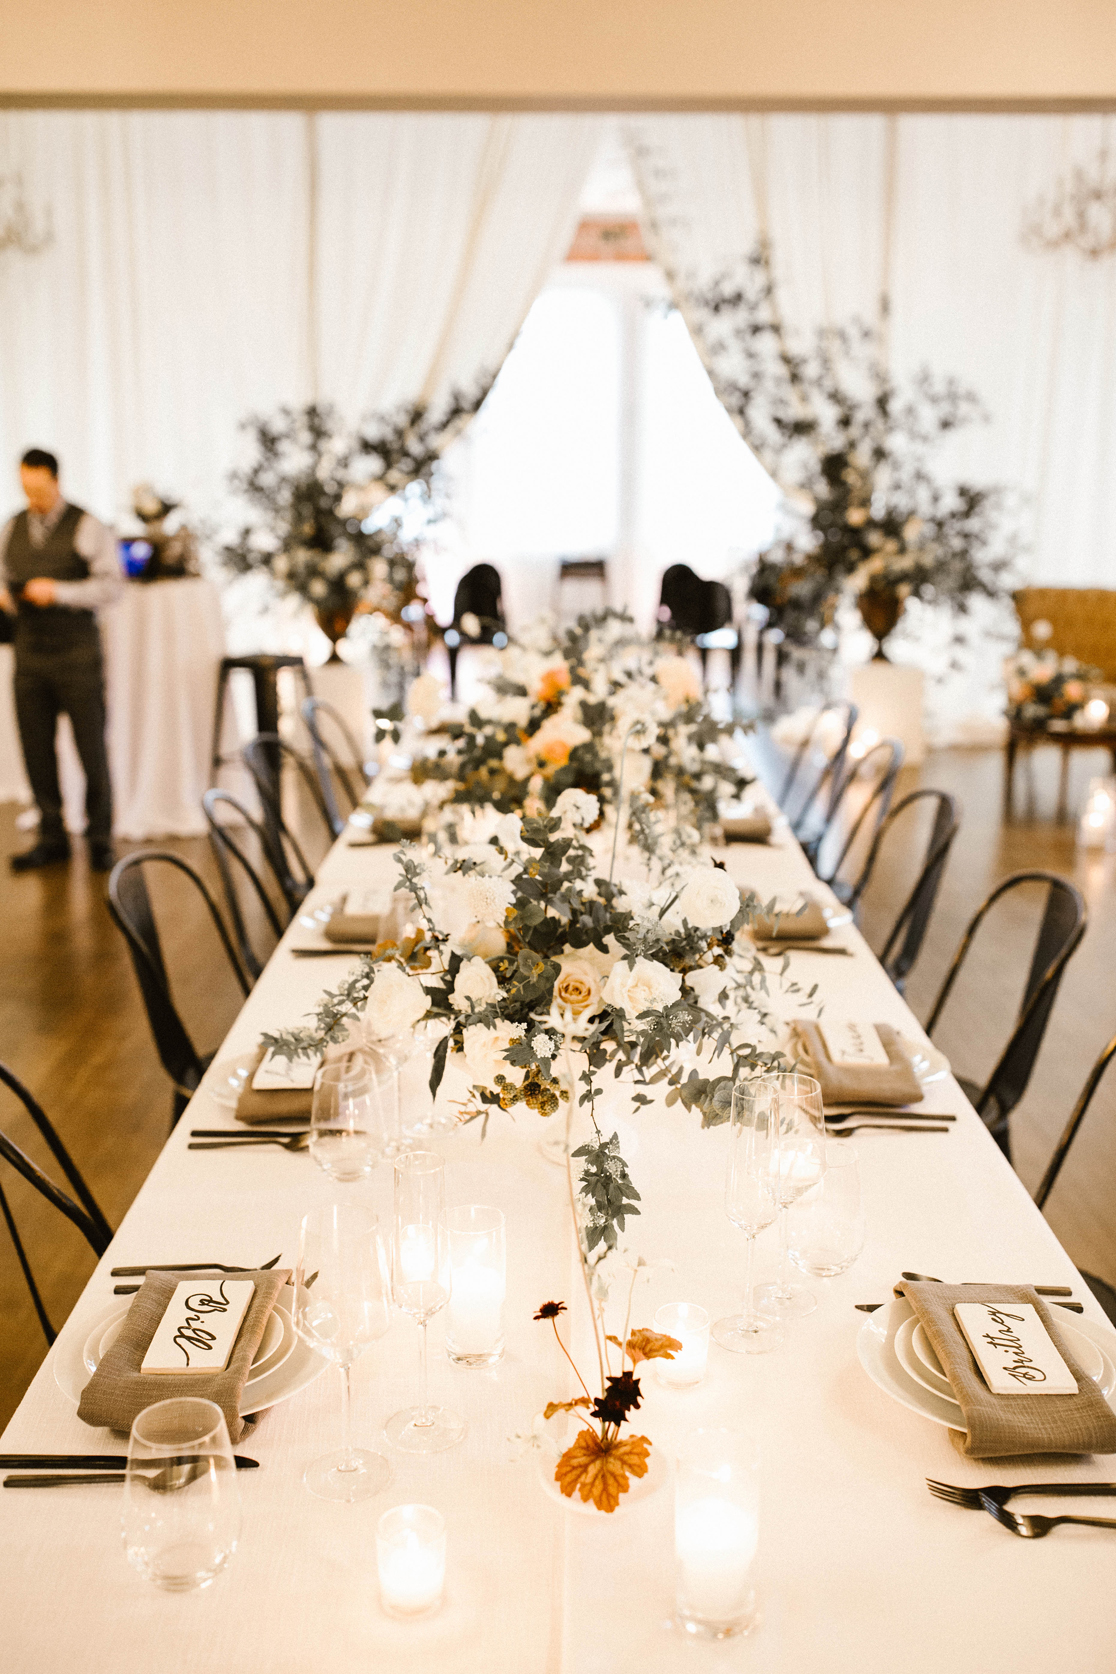 Hollywood+Anderson+House_Woodinville_2017_Weddings+In+Woodinville184.jpg